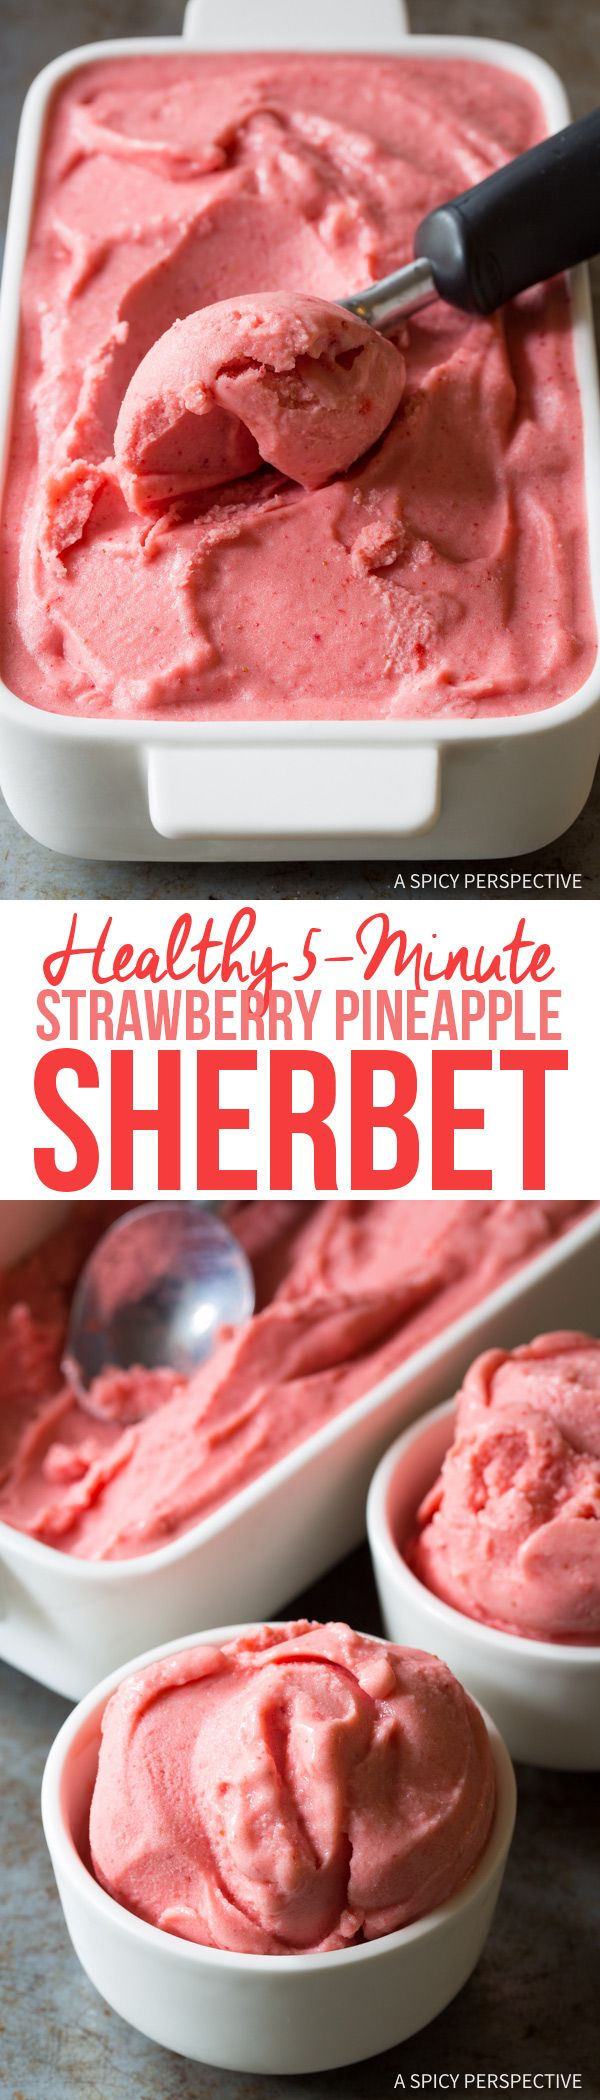 Healthy 5-Minute Strawberry Pineapple Sherbet Recipe #summer via @spicyperspectiv